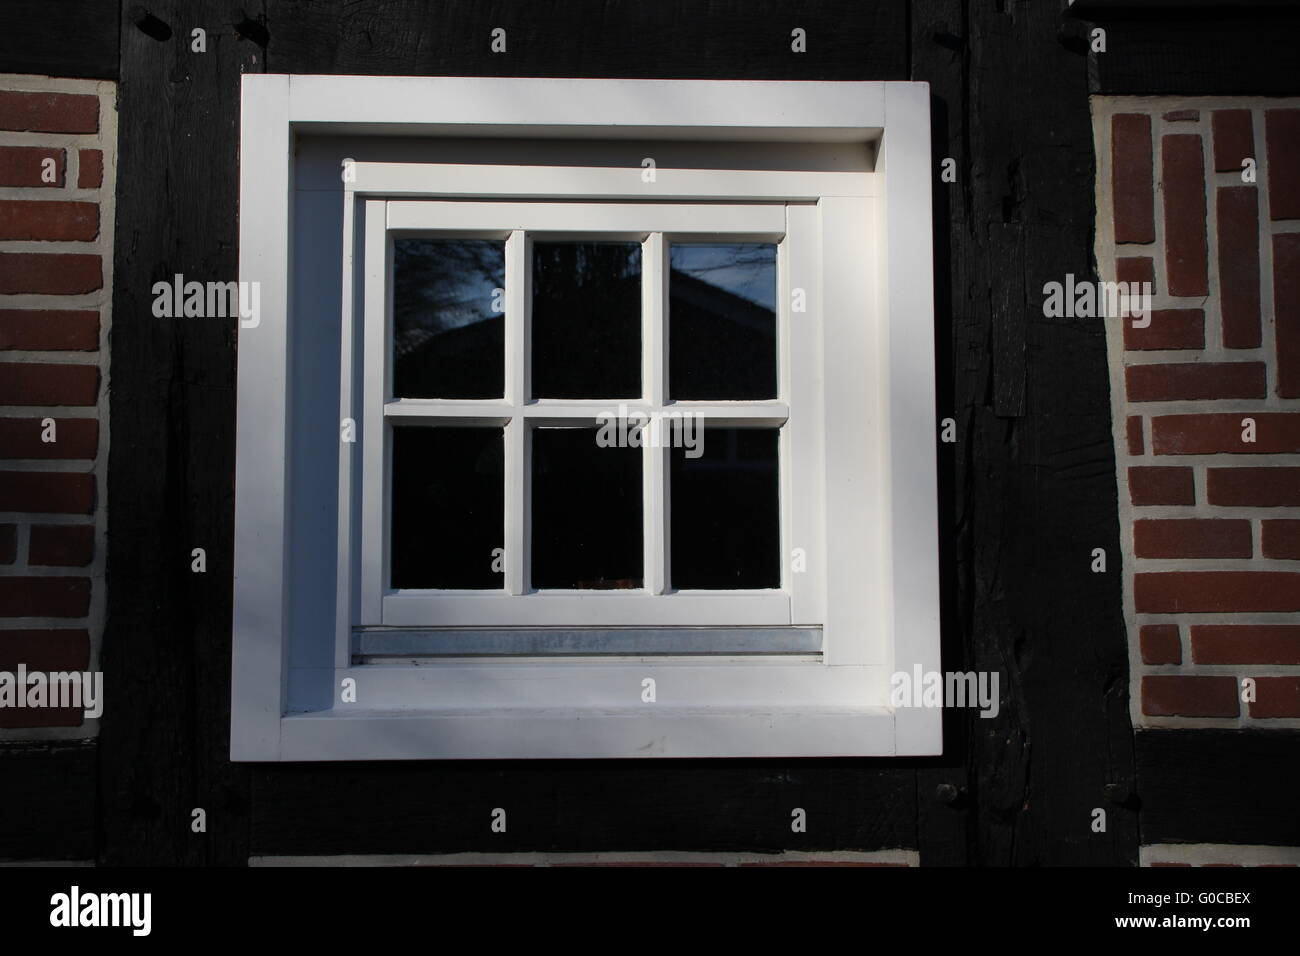 A little window - Stock Image